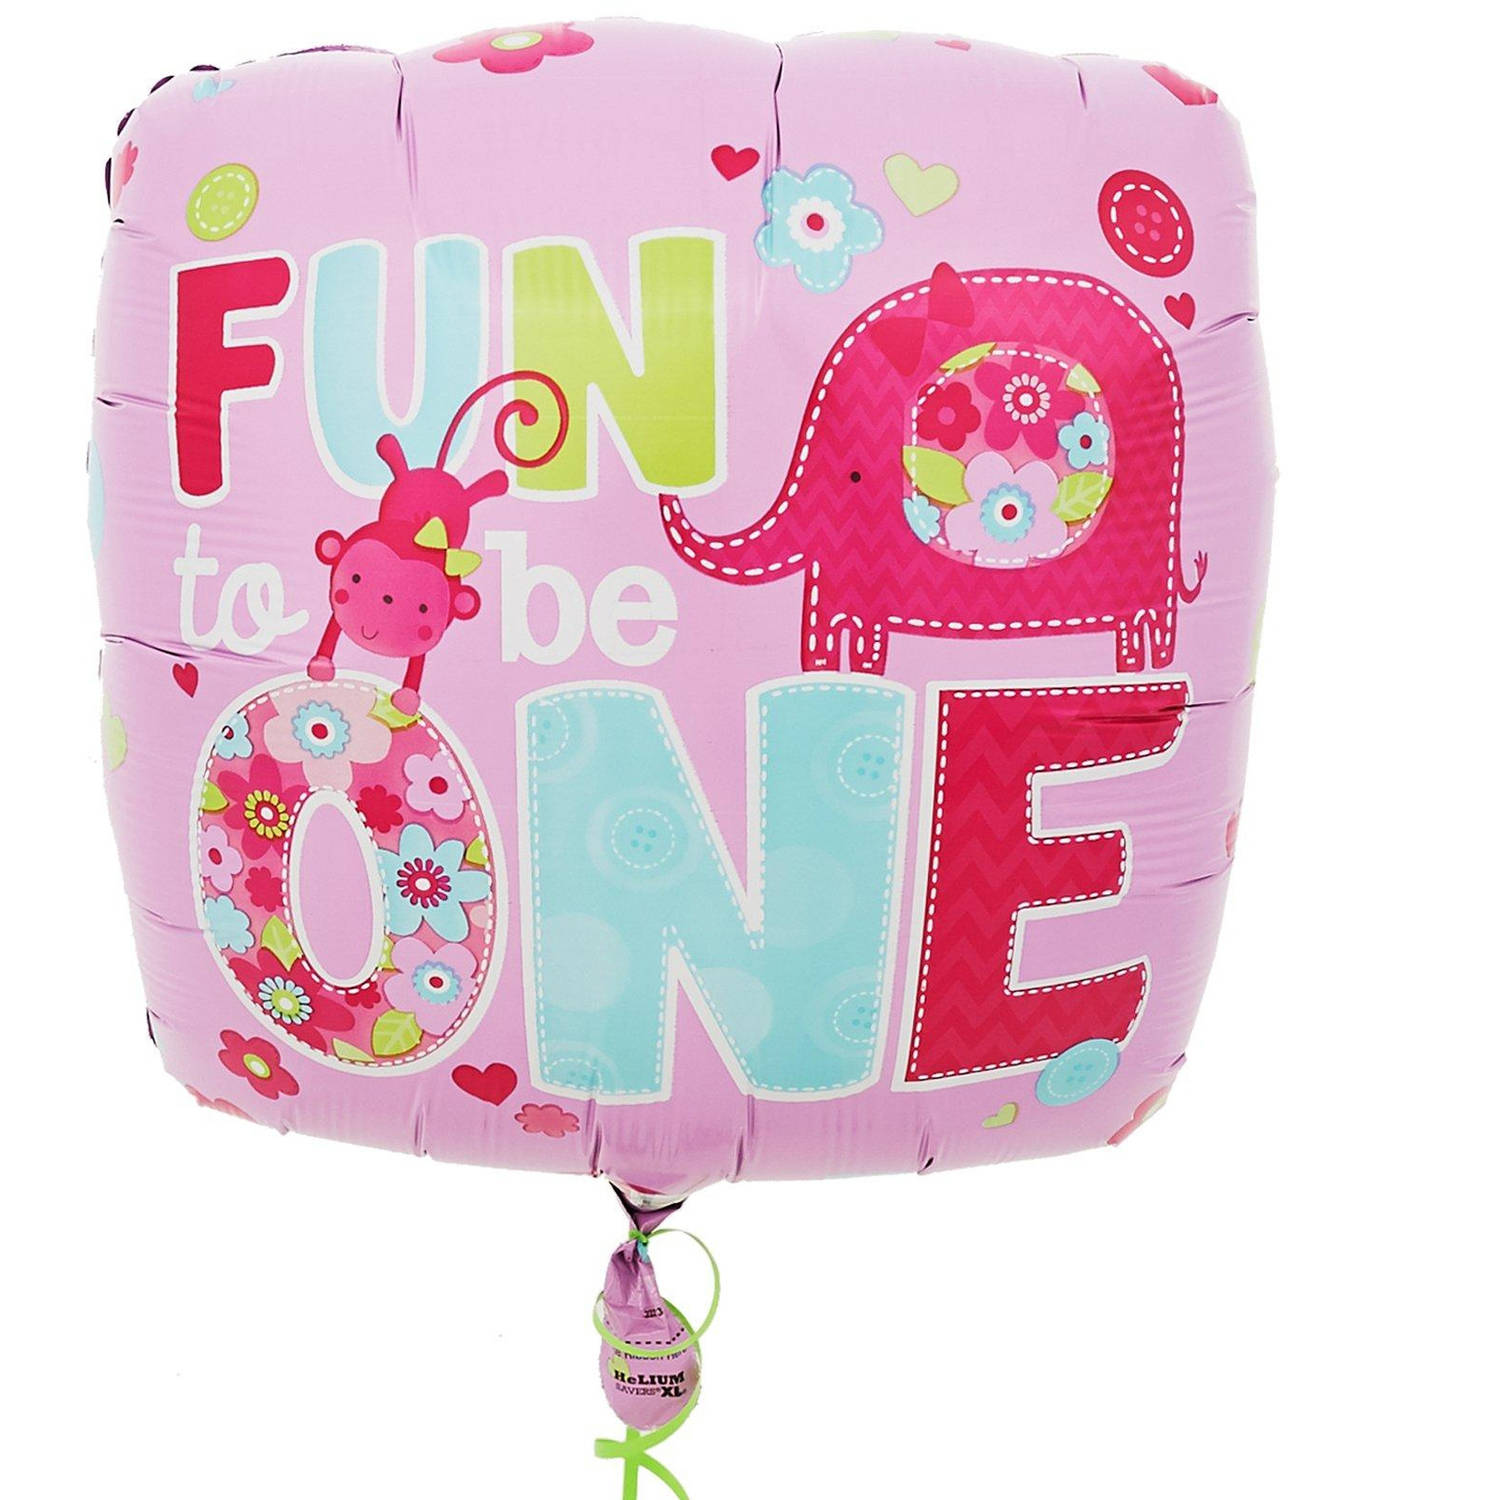 Fun at One Girl Foil Balloon